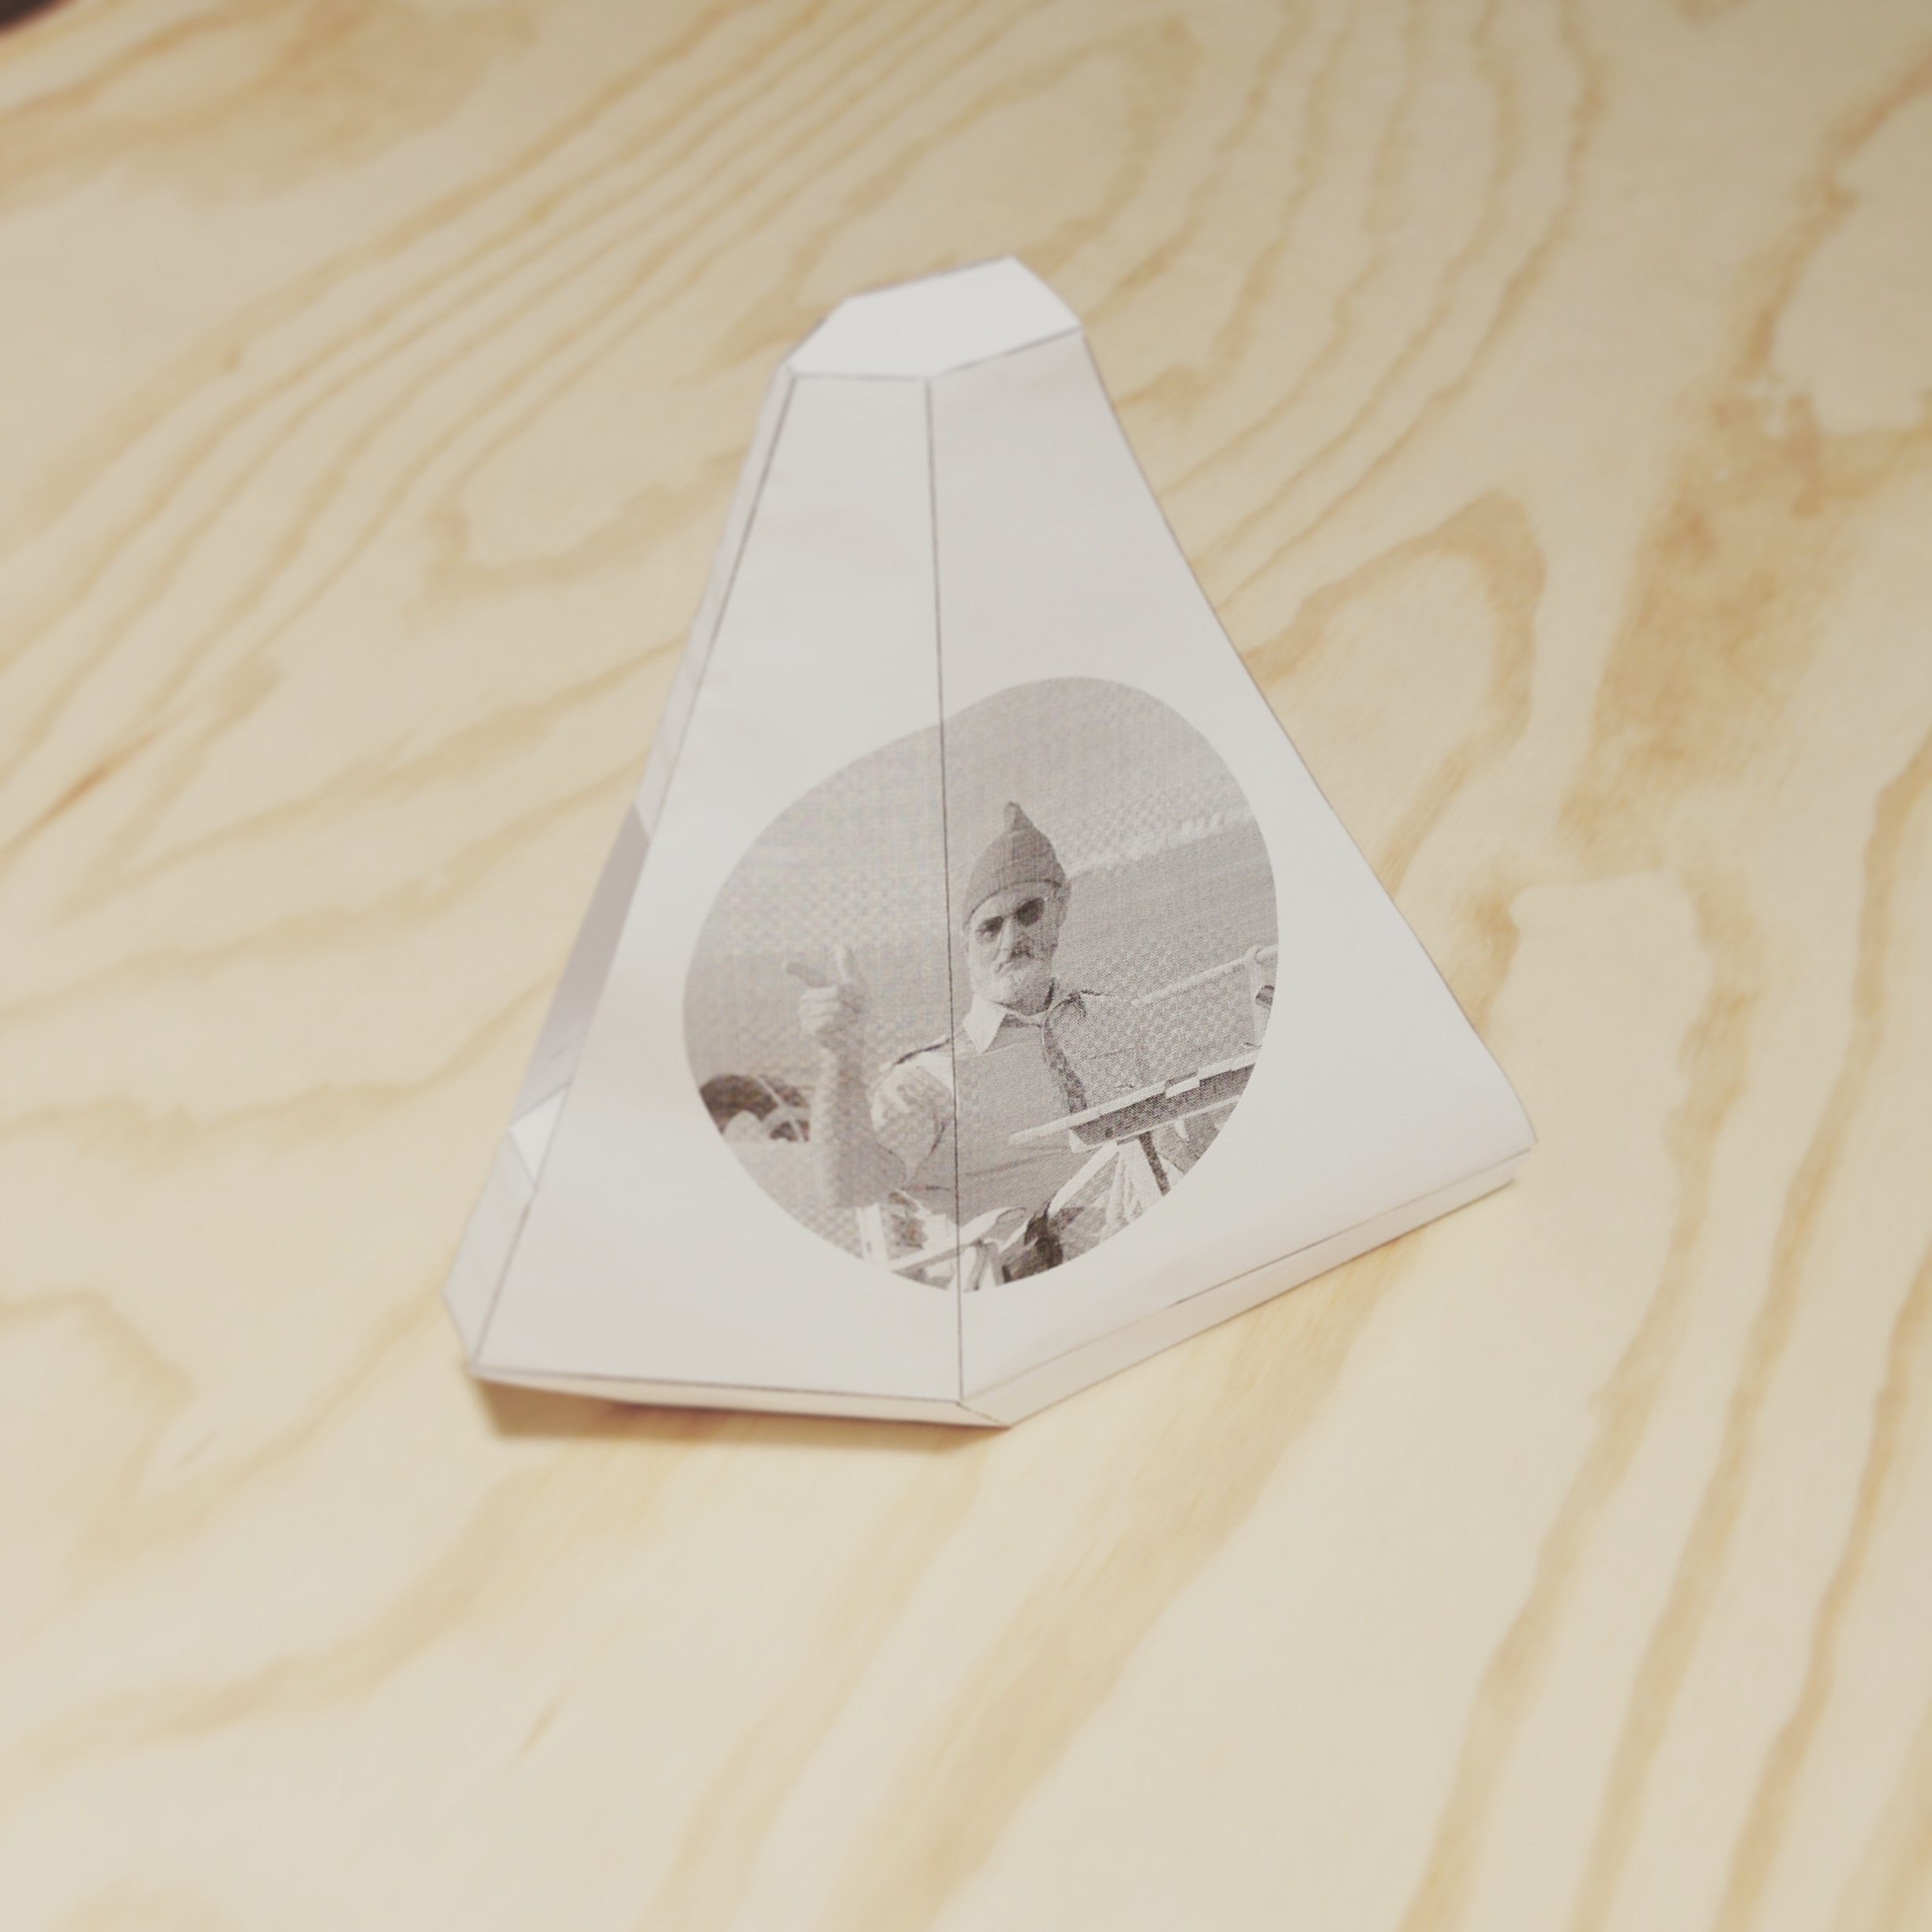 The Belafonte , paper boat entry #2.